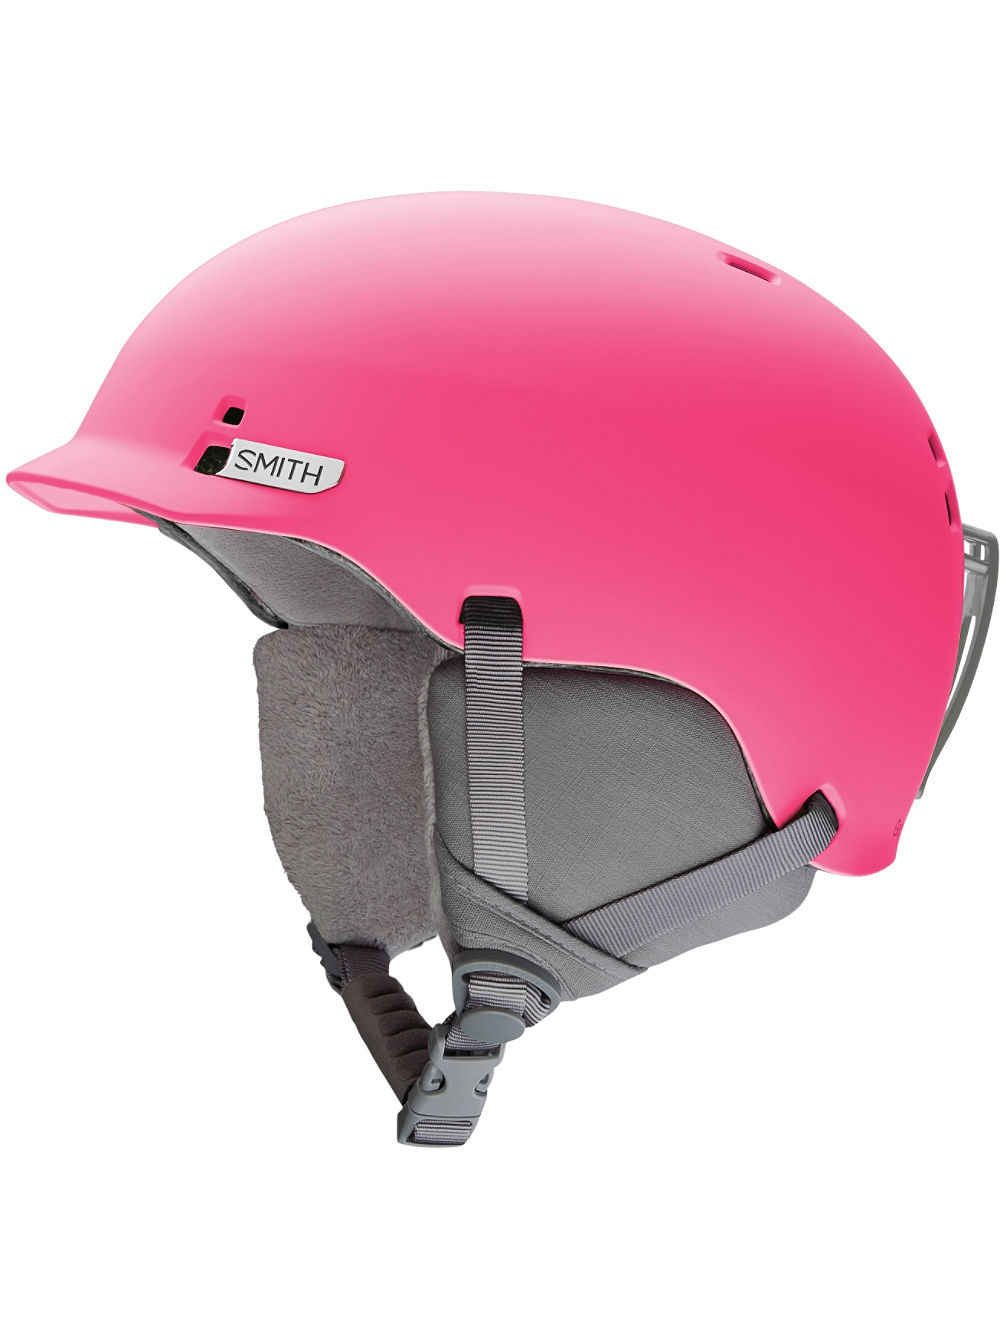 Holt 2 Helmet Youth